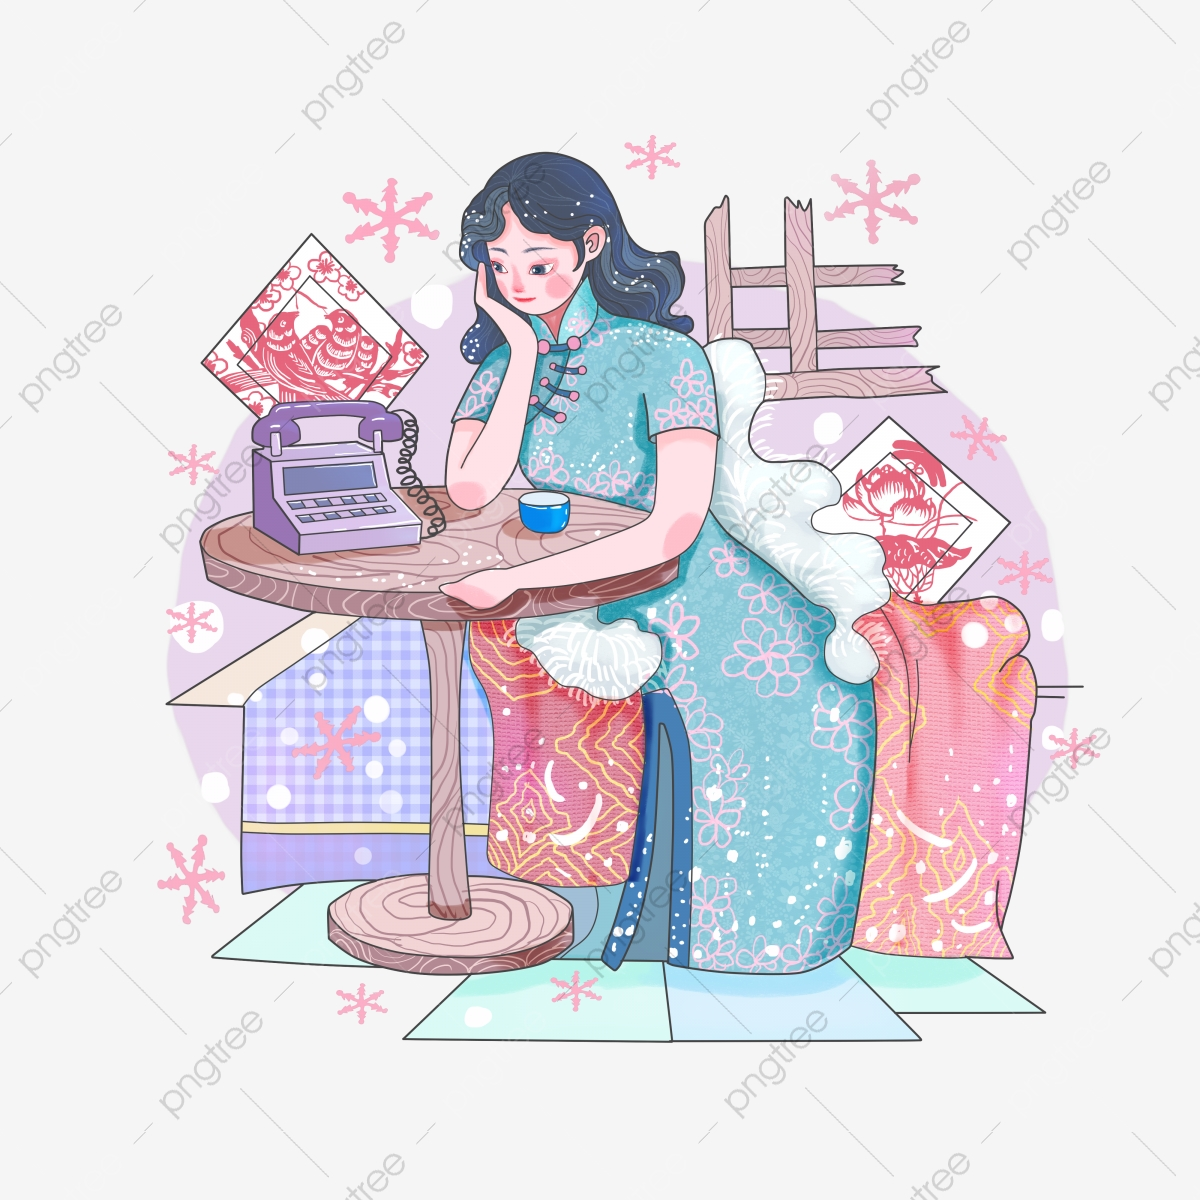 South northern cheongsam miss. February clipart early